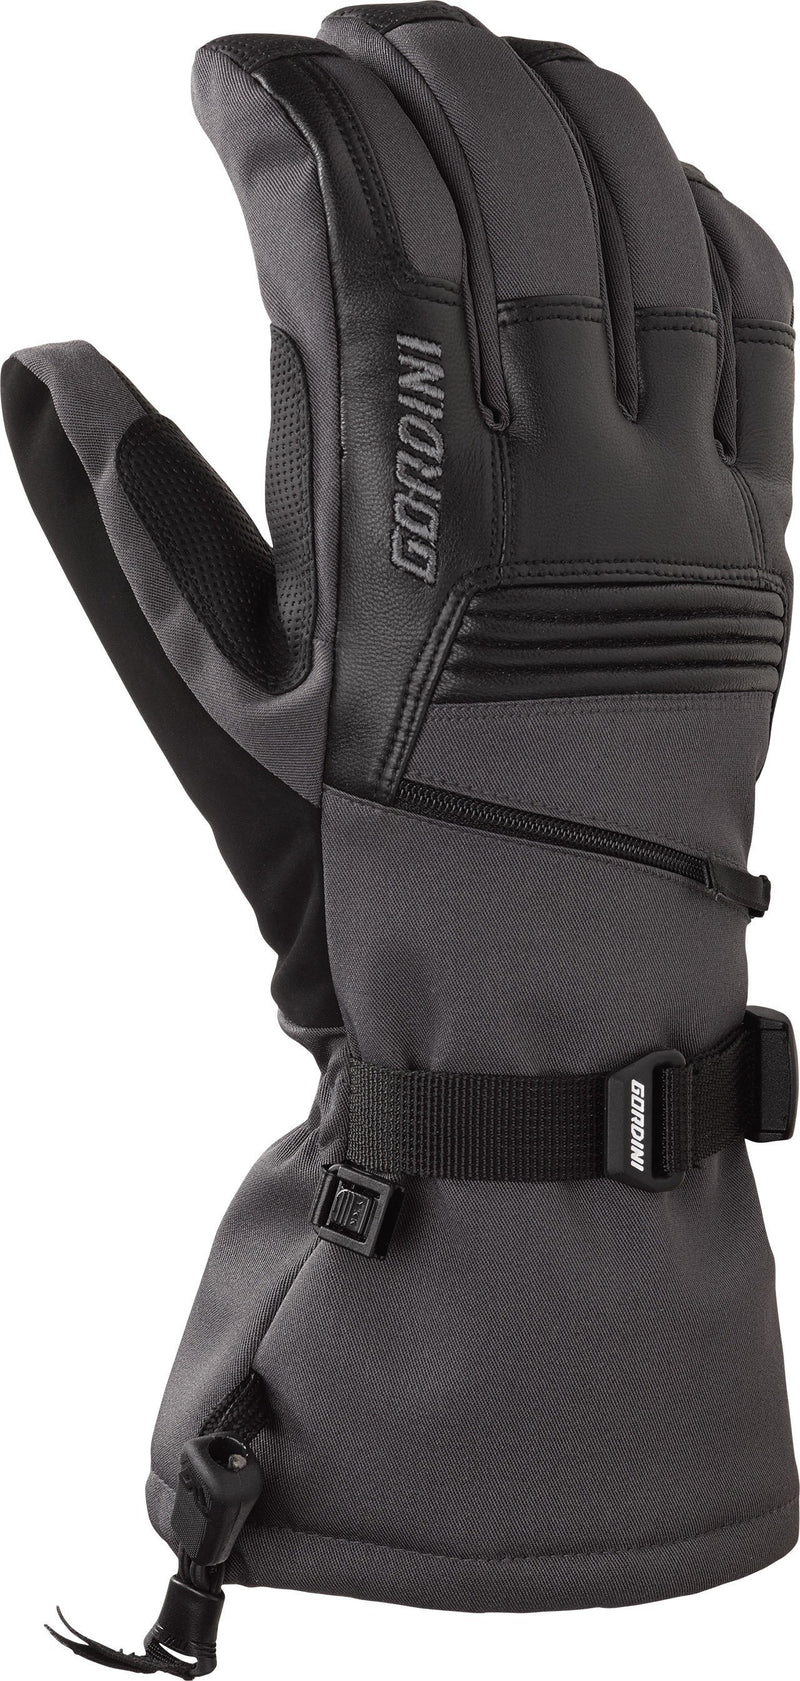 GORDINI MEN'S GTX STORM TROOPER GLOVE